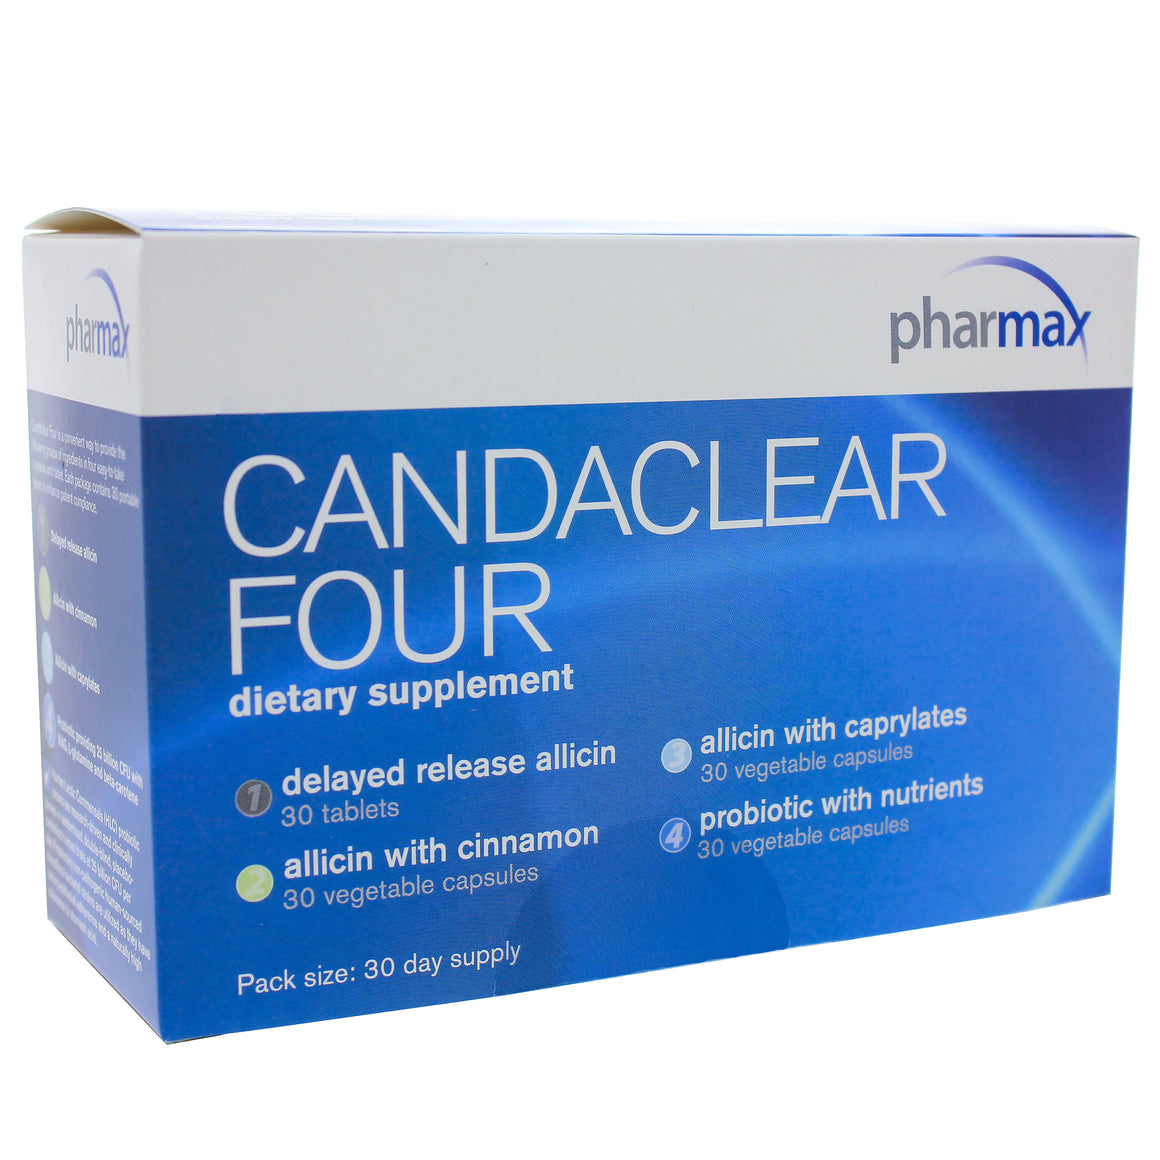 Candaclear Four (30 Day Supply)